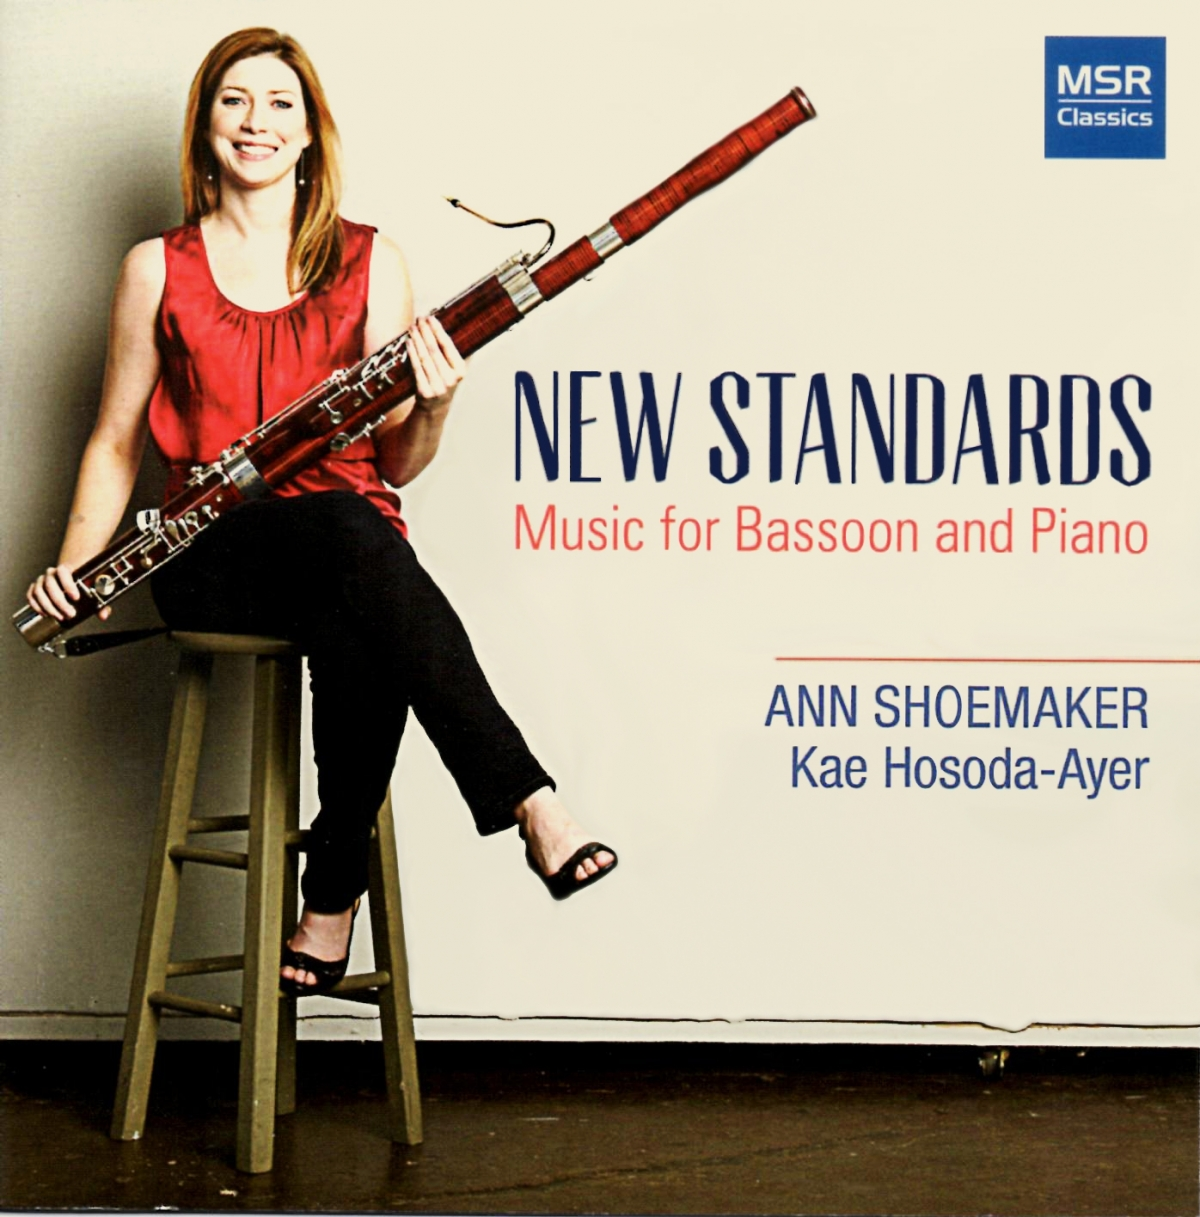 New Standards - Music for Bassoon and Piano by Ann Shoemaker